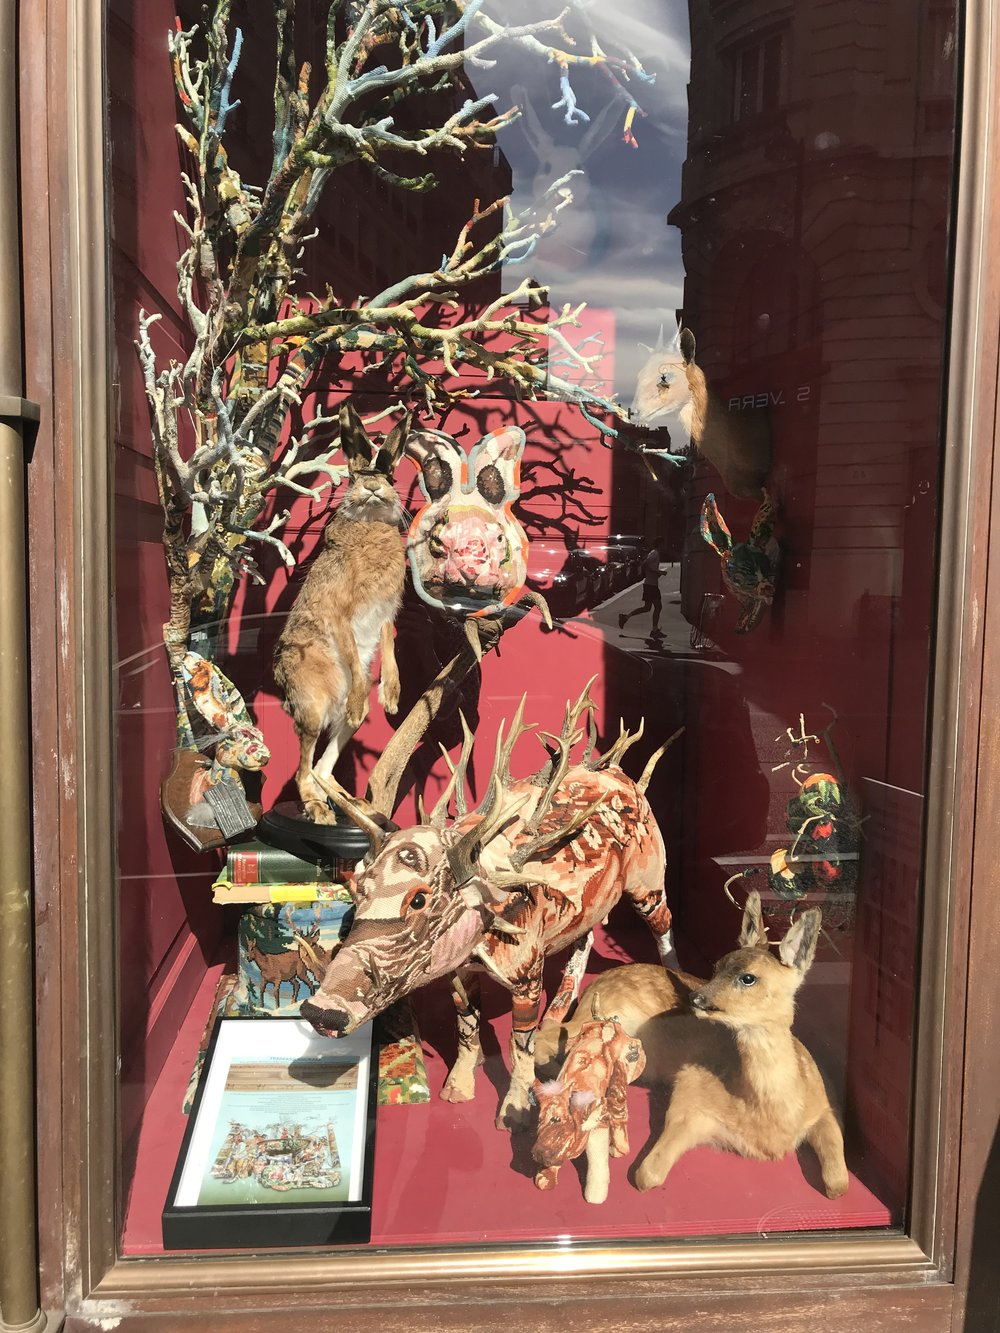 FASCINATING WINDOW DISPLAYS OF DEYROLLES